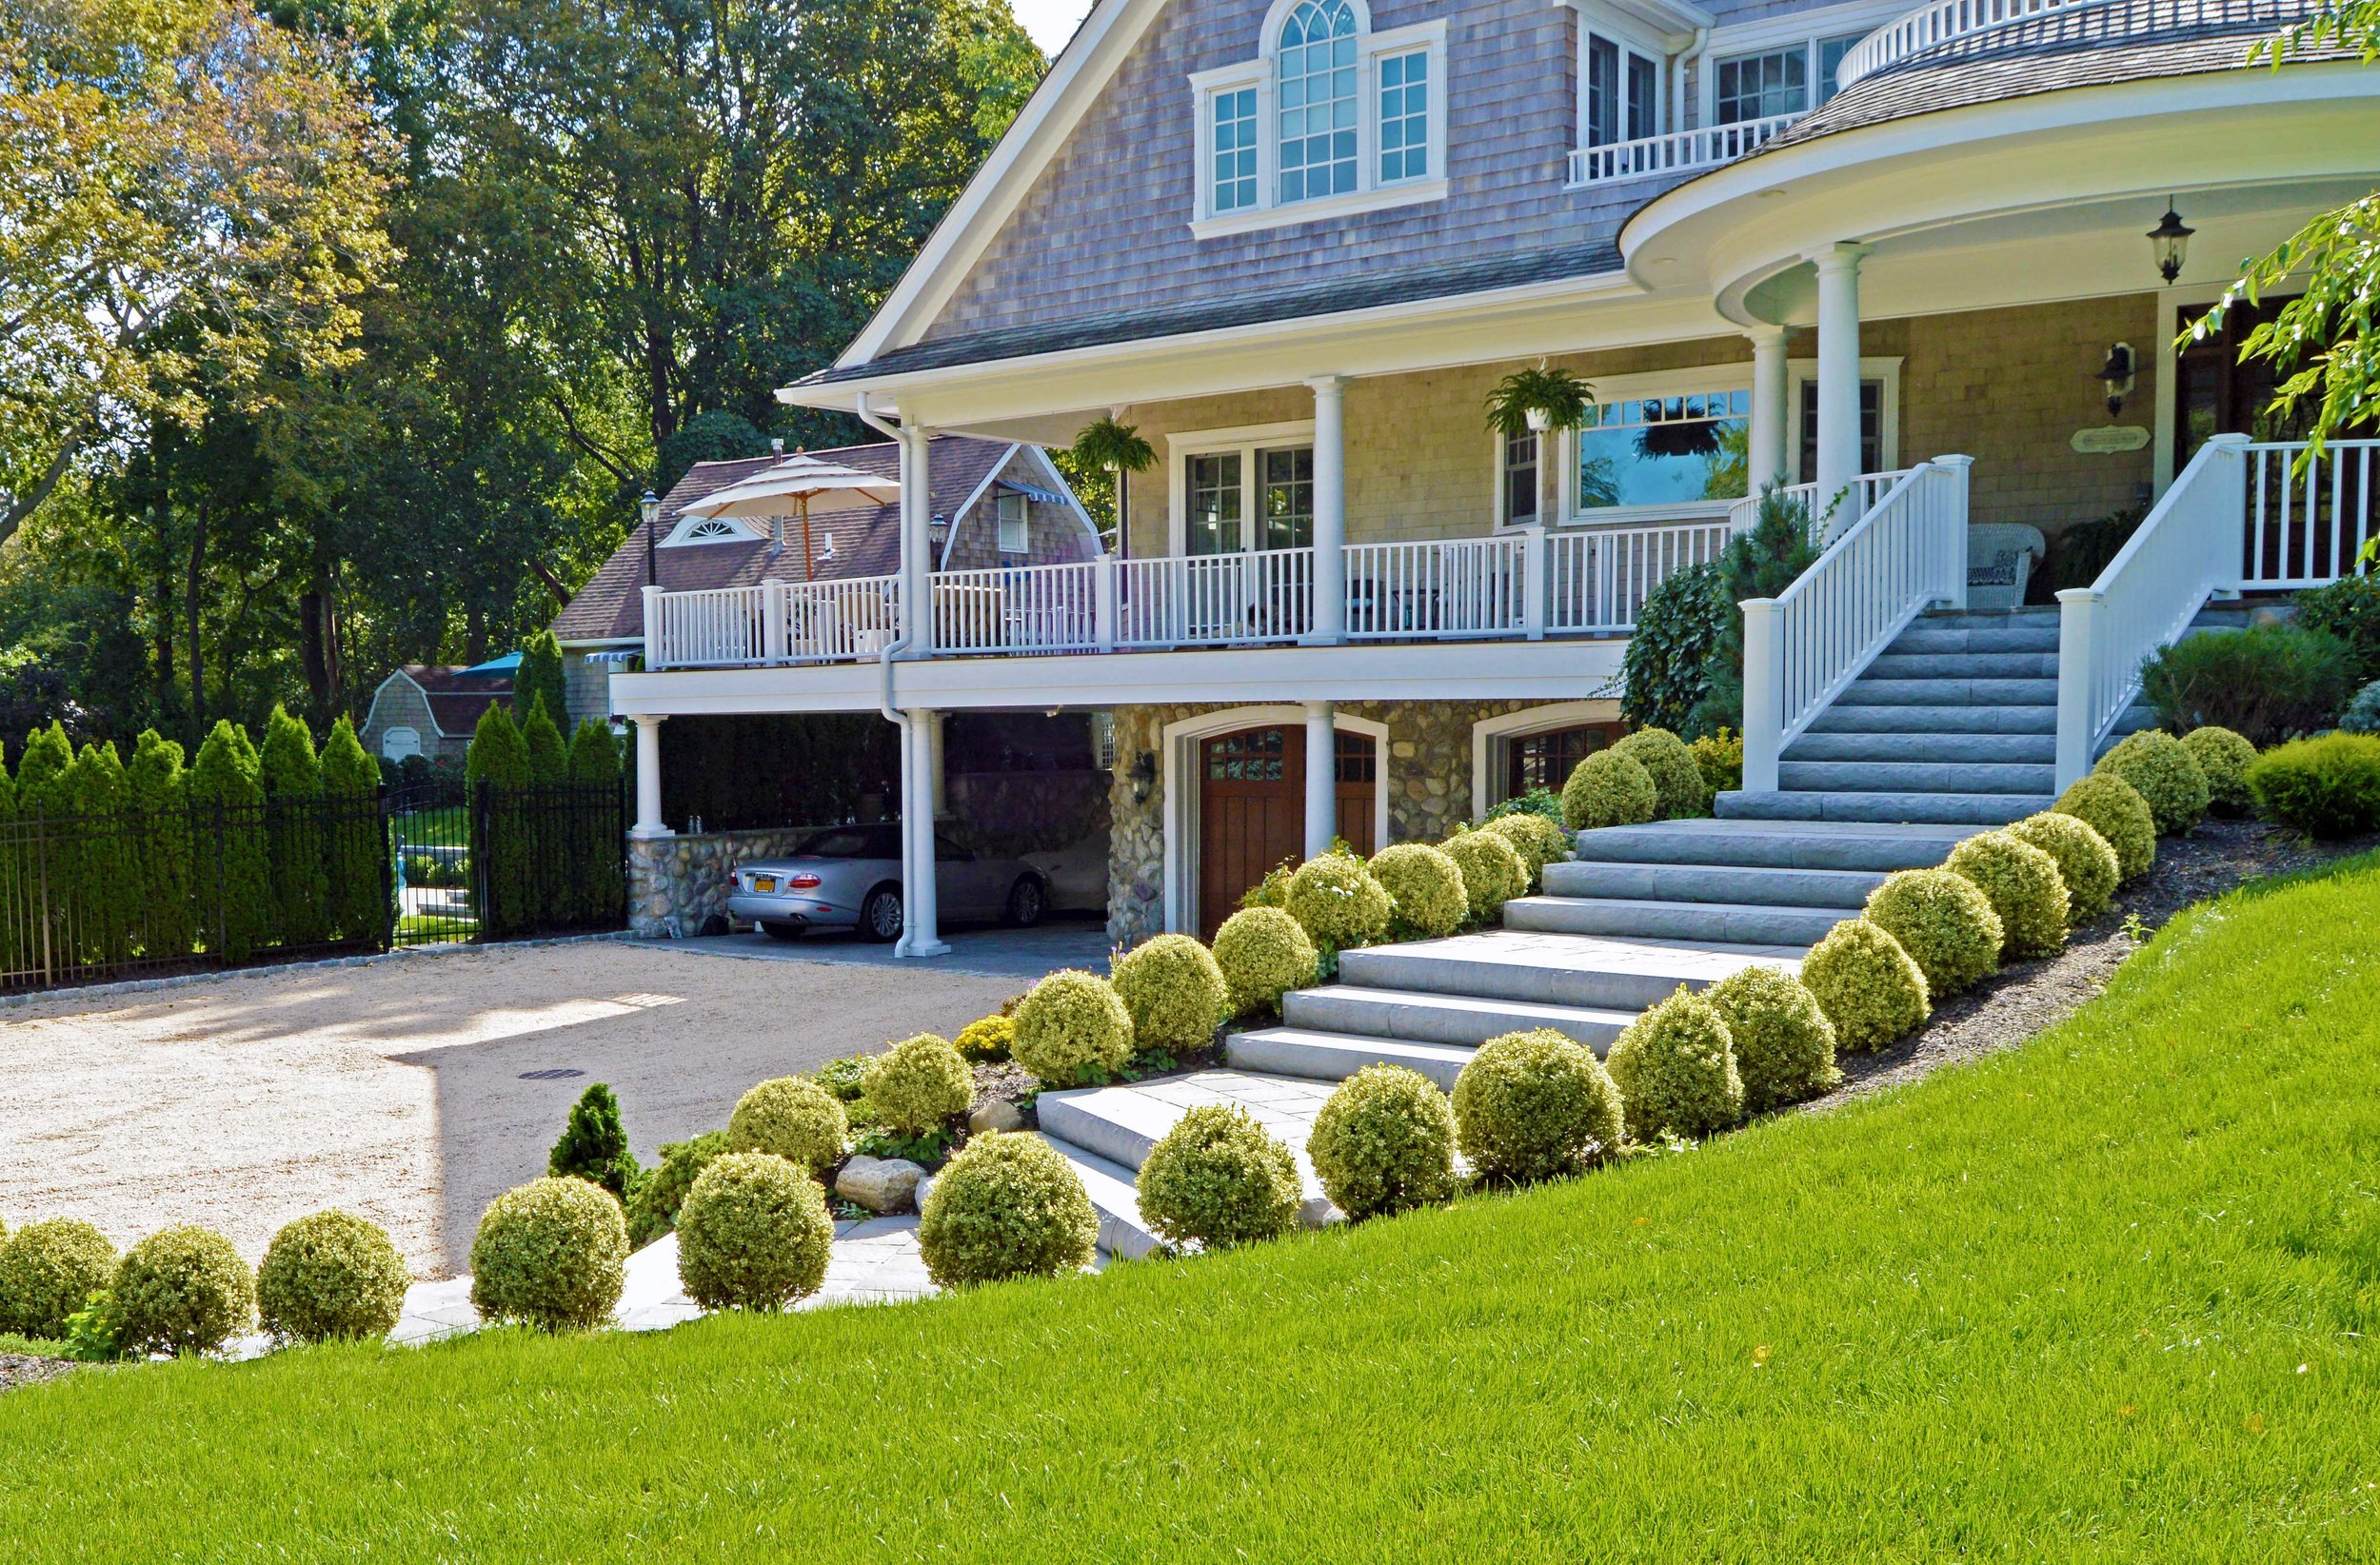 Top landscape design in Massapequa, New York